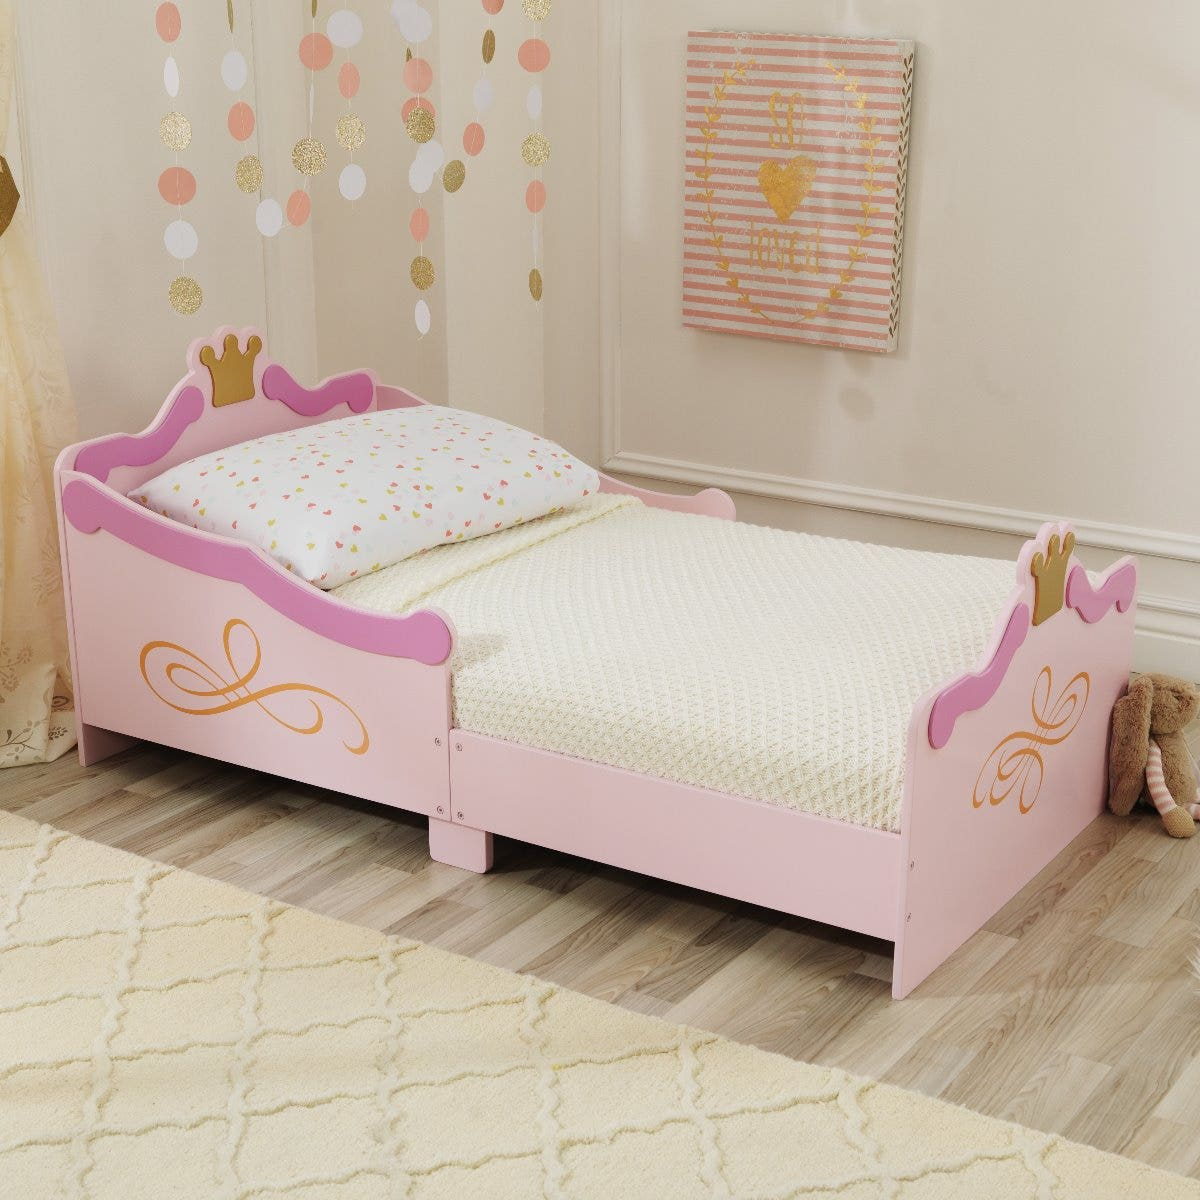 Makes the transition from a crib to a regular bed as painless as possible